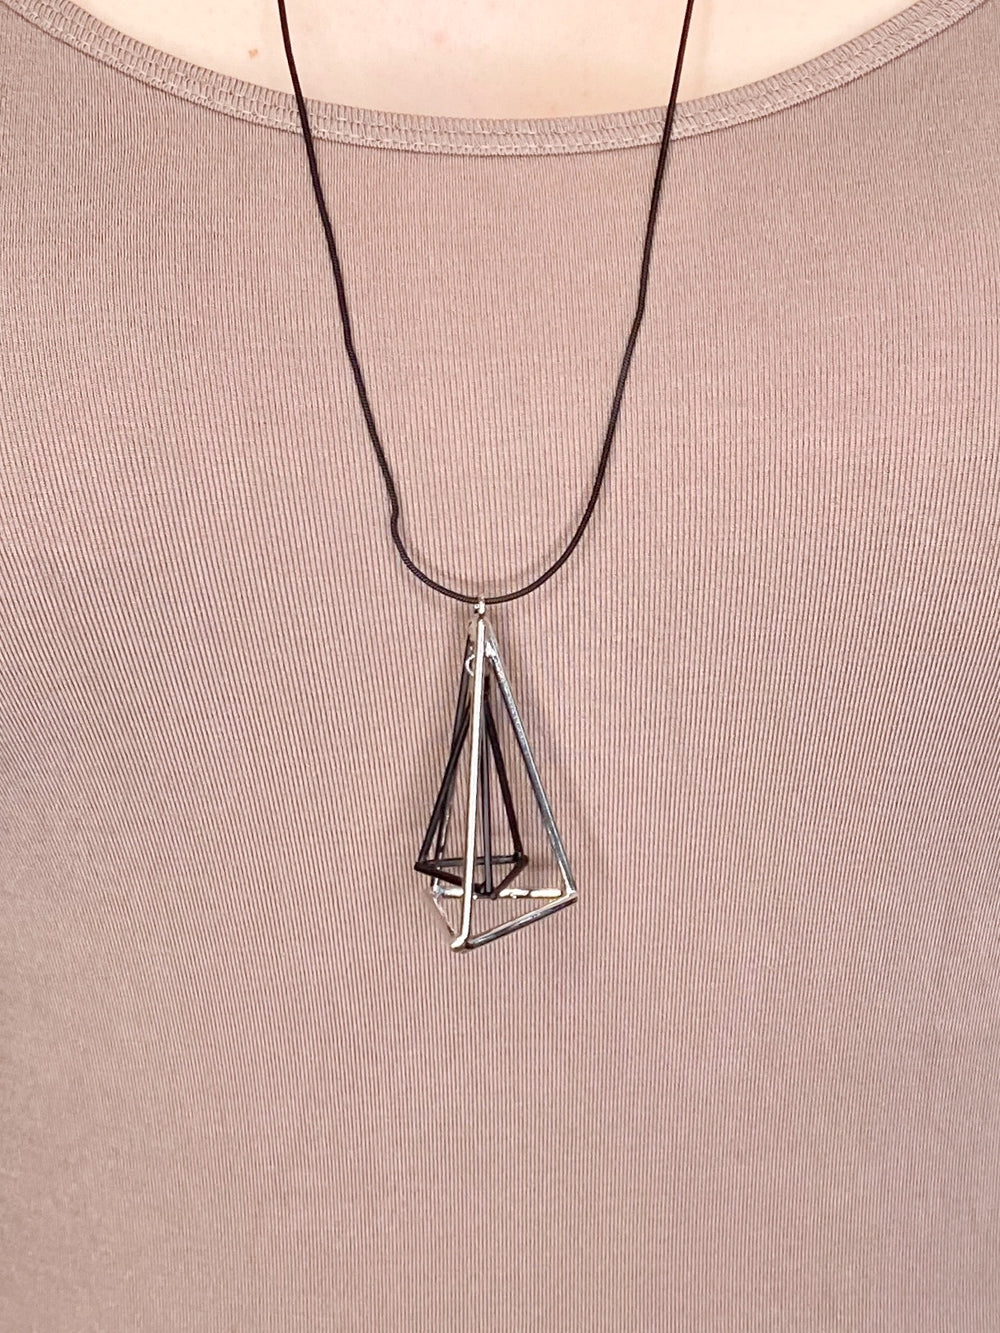 NECKLACE - Dimensional Triangles